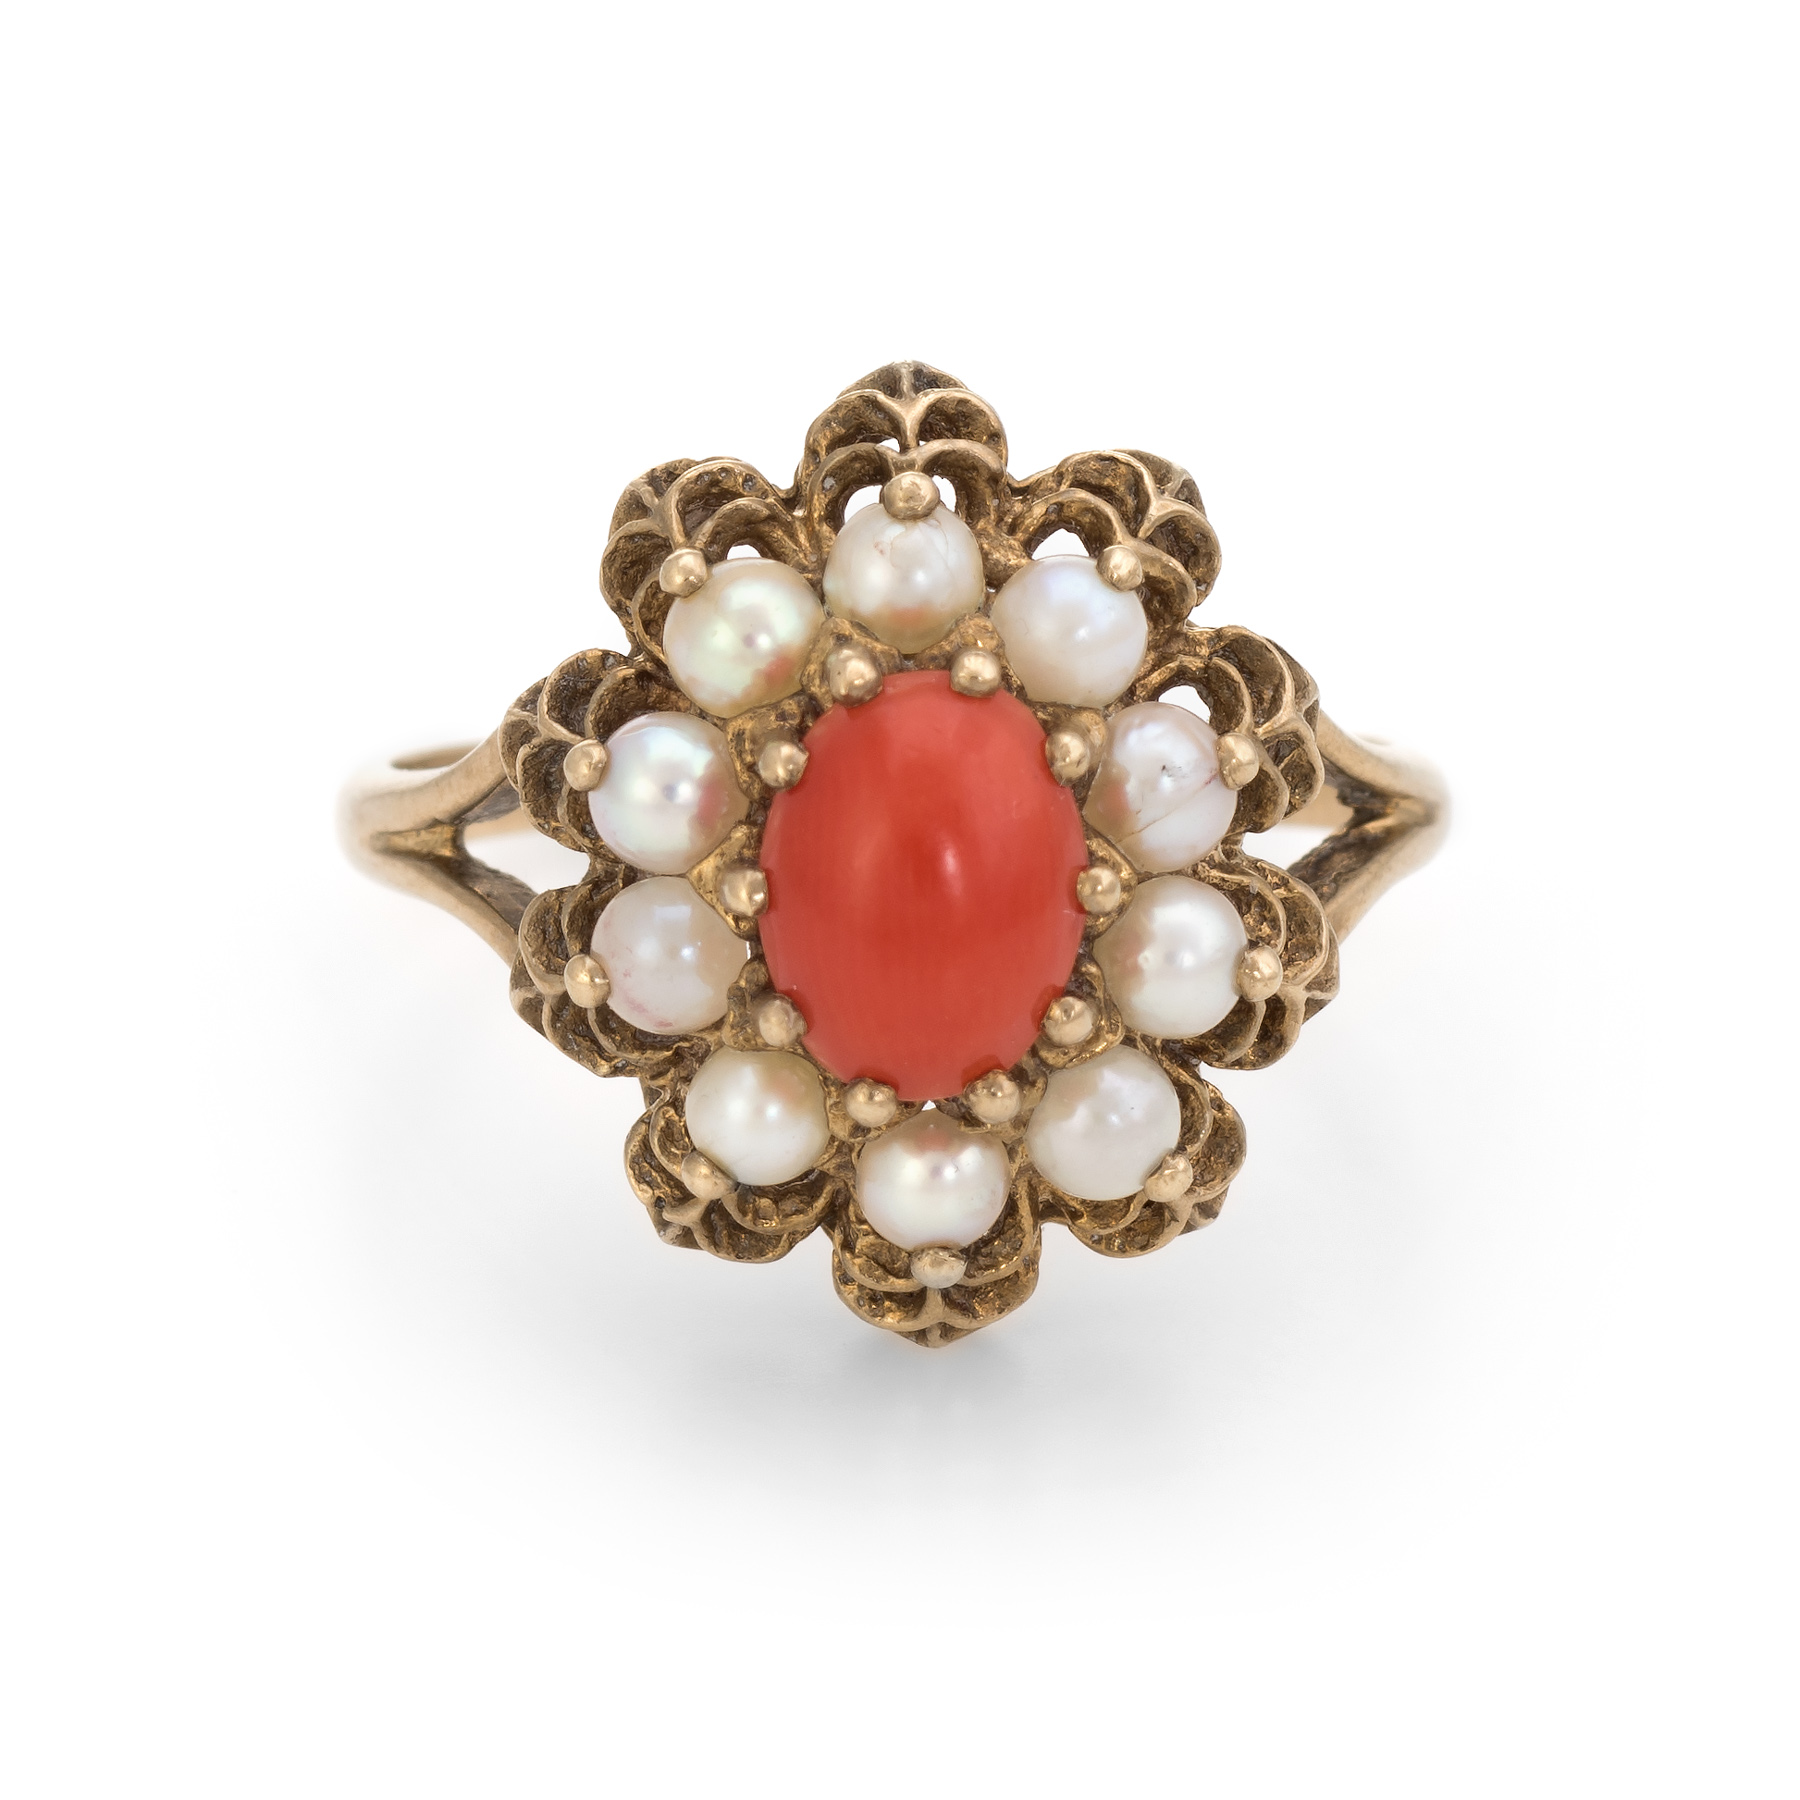 b8c30b1ba Details about Red Coral Cultured Pearl Cocktail Ring Vintage 9k Gold  English Hallmark Jewelry